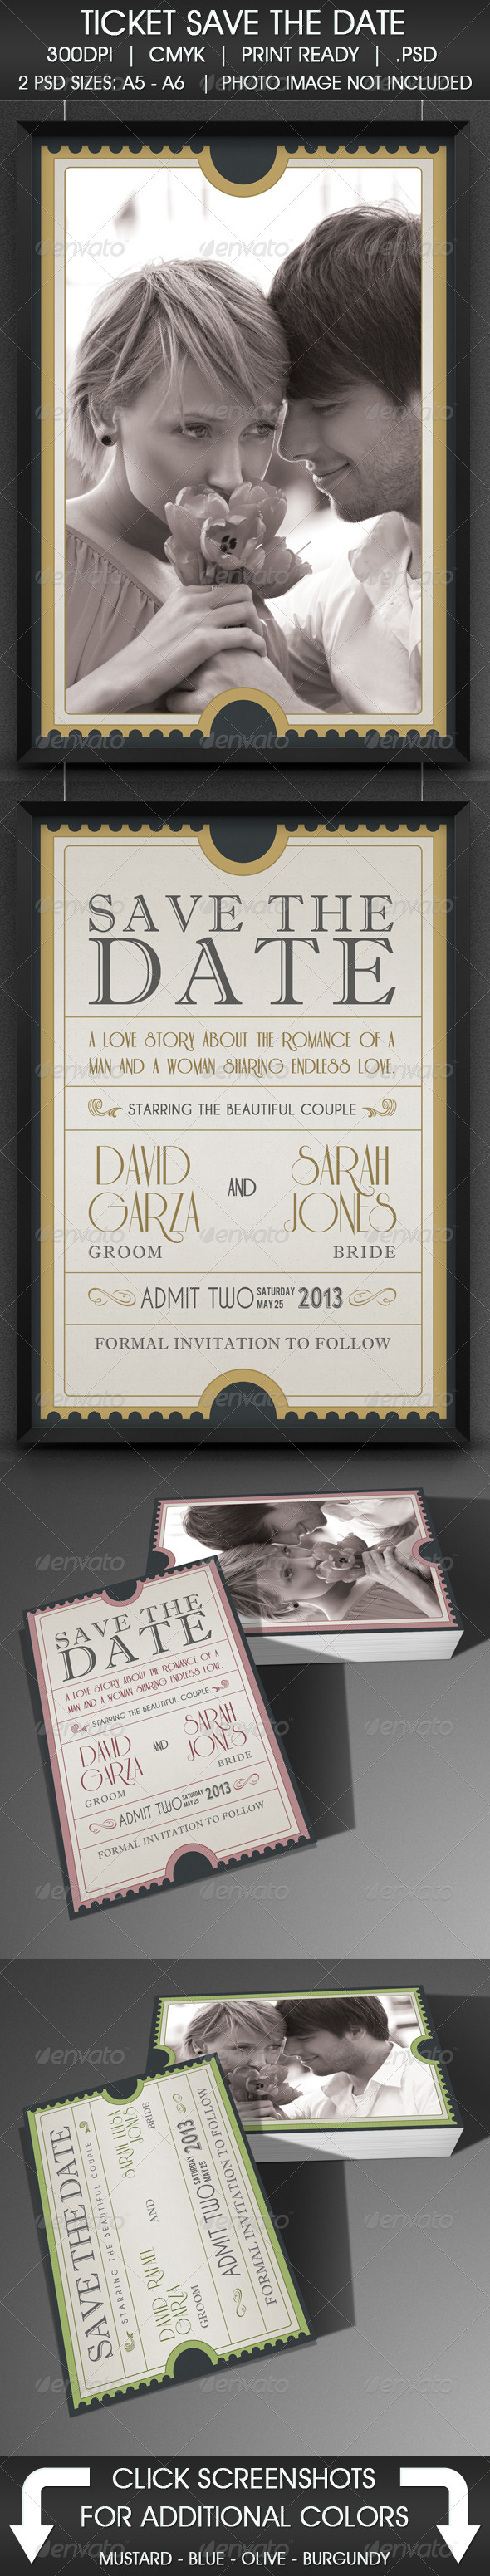 Admission Ticket Save The Date - Cards & Invites Print Templates